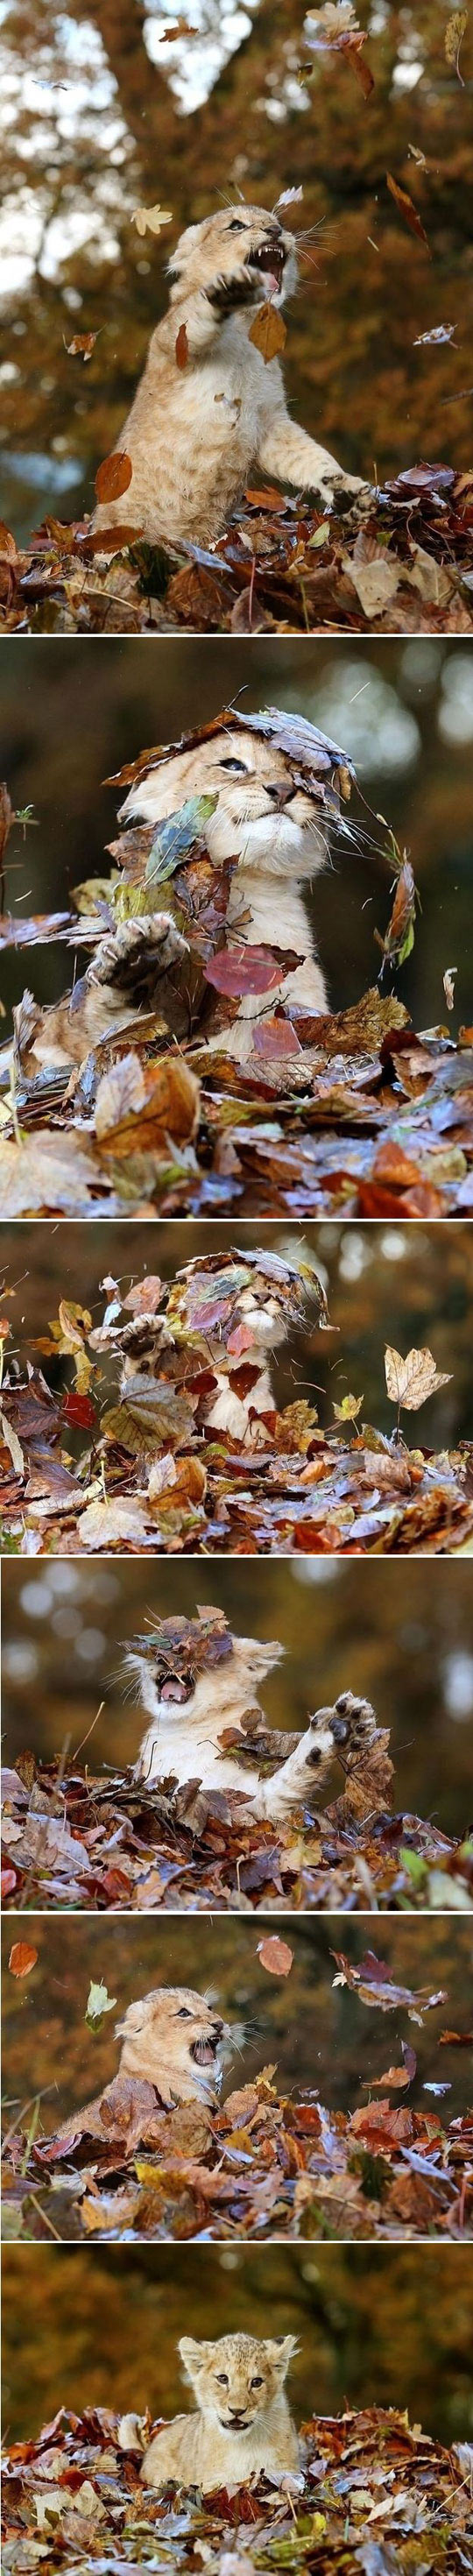 cool-young-lion-baby-playing-leaves